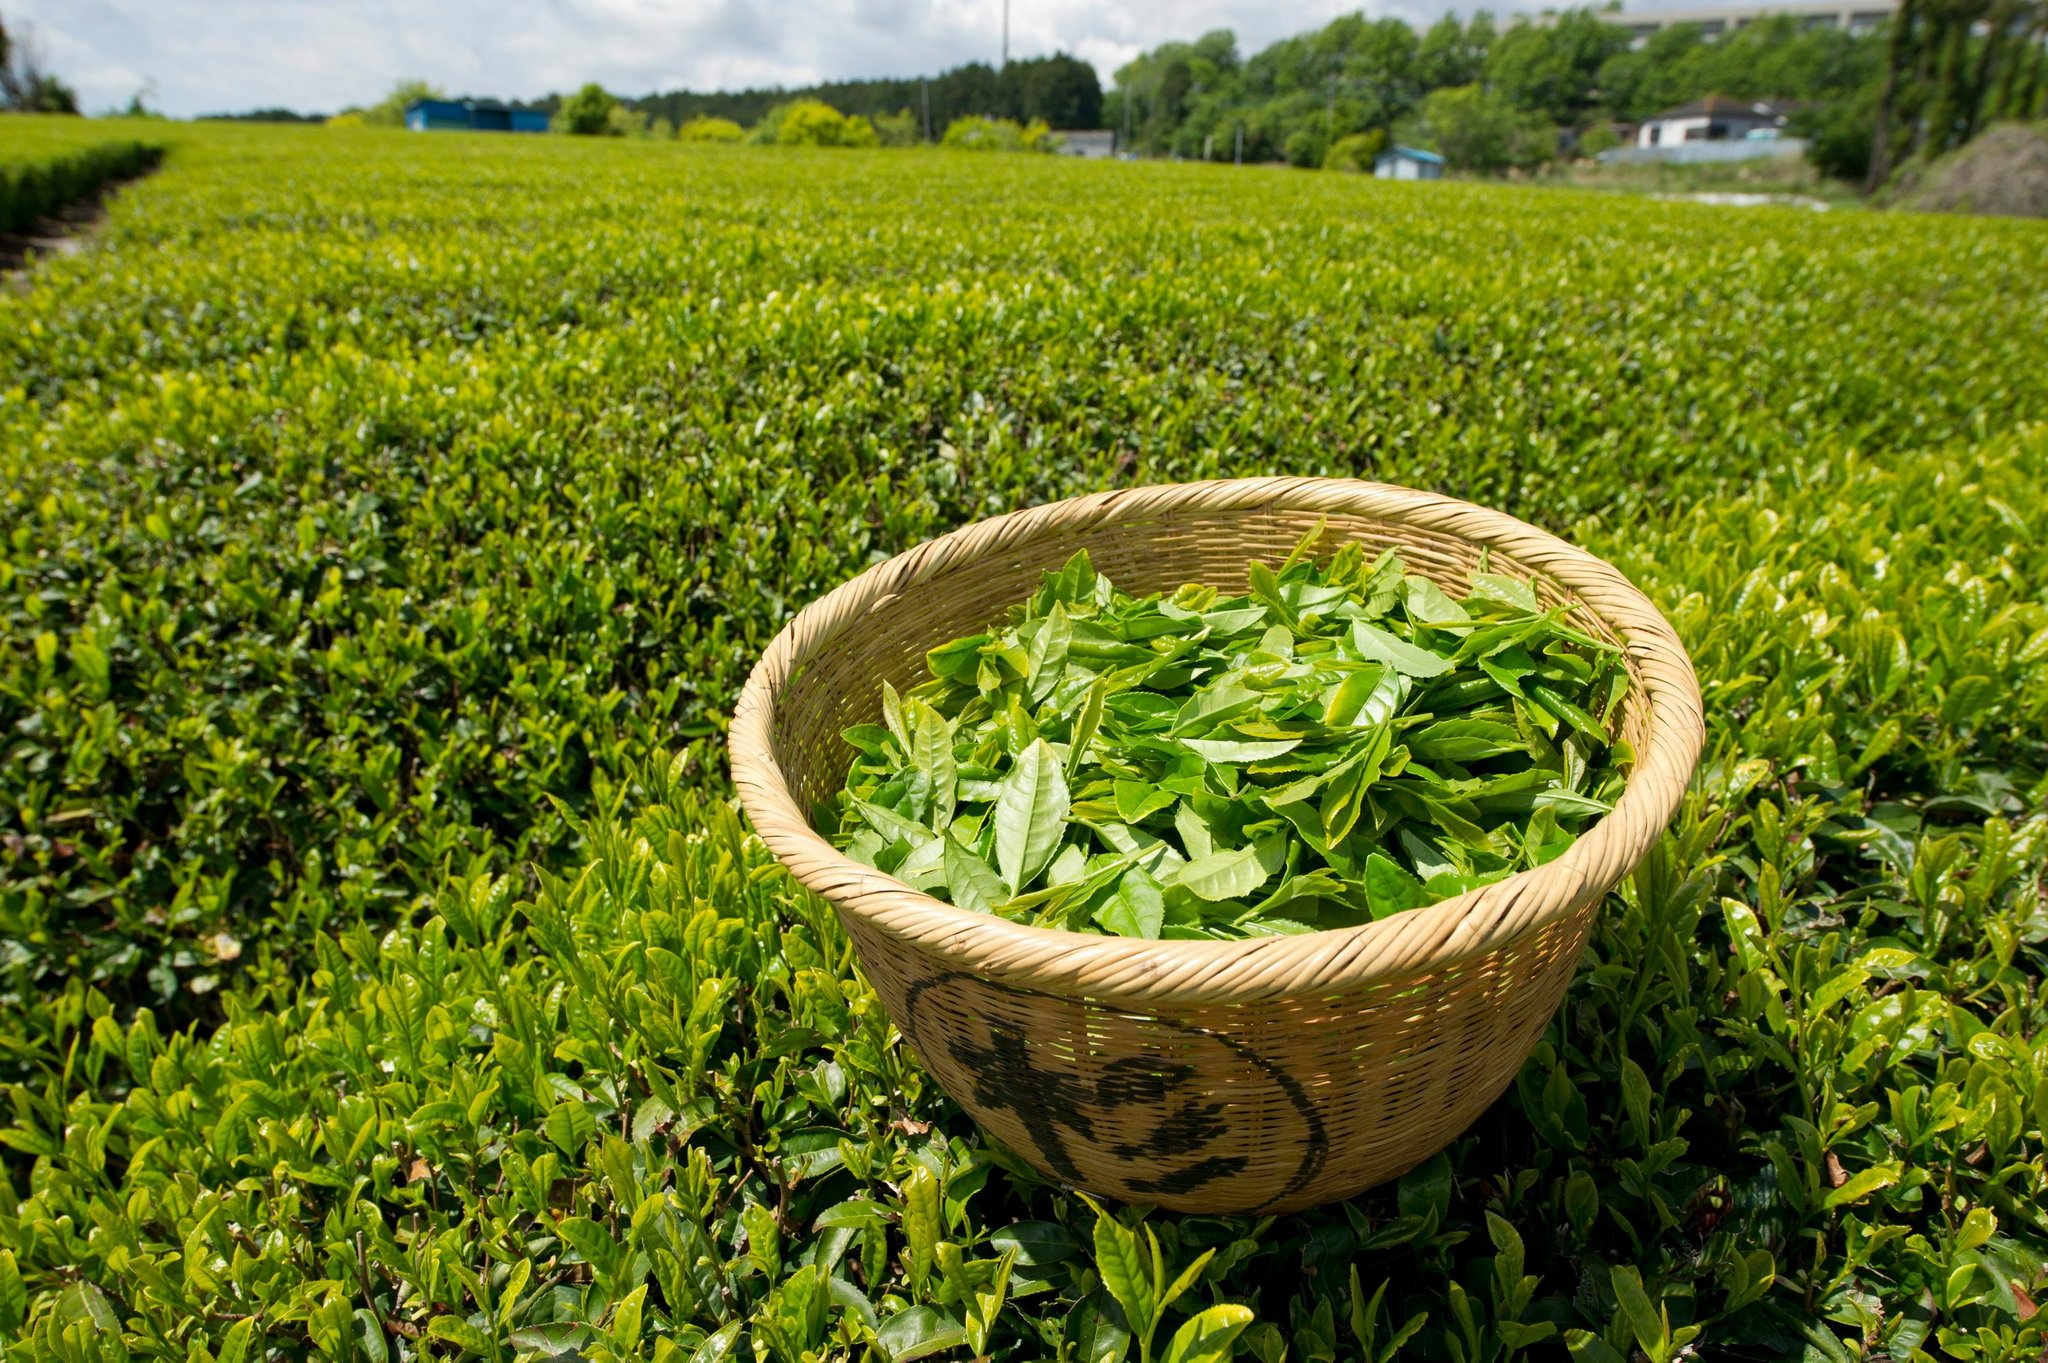 green tea What is green tea it surprises many people new to tea to learn that green tea and black tea originate from the same exact plant species—camellia sinensis it's ultimately the variety of tea plant and how the tea leaves are processed that defines how green tea becomes green and black tea becomes black.